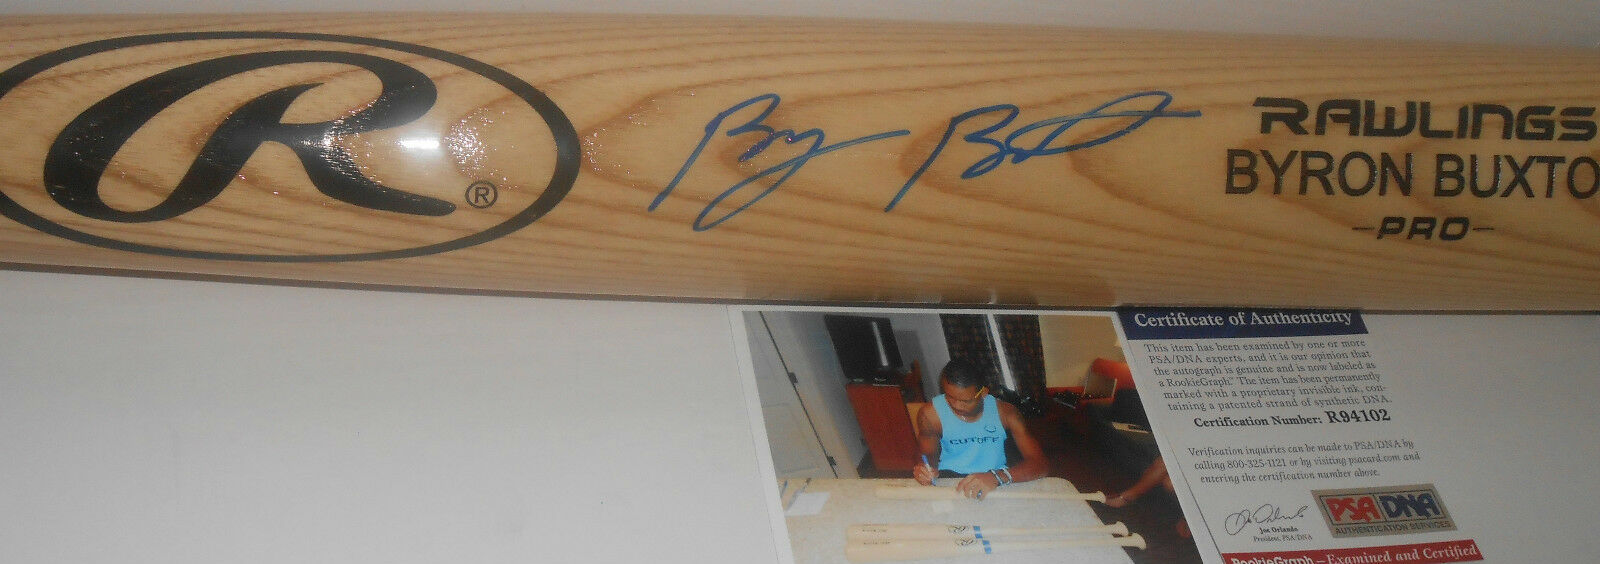 Byron Buxton Minnesota Twins PSA DNA ROOKIE COA Signed Baseball Bat Blonde Z